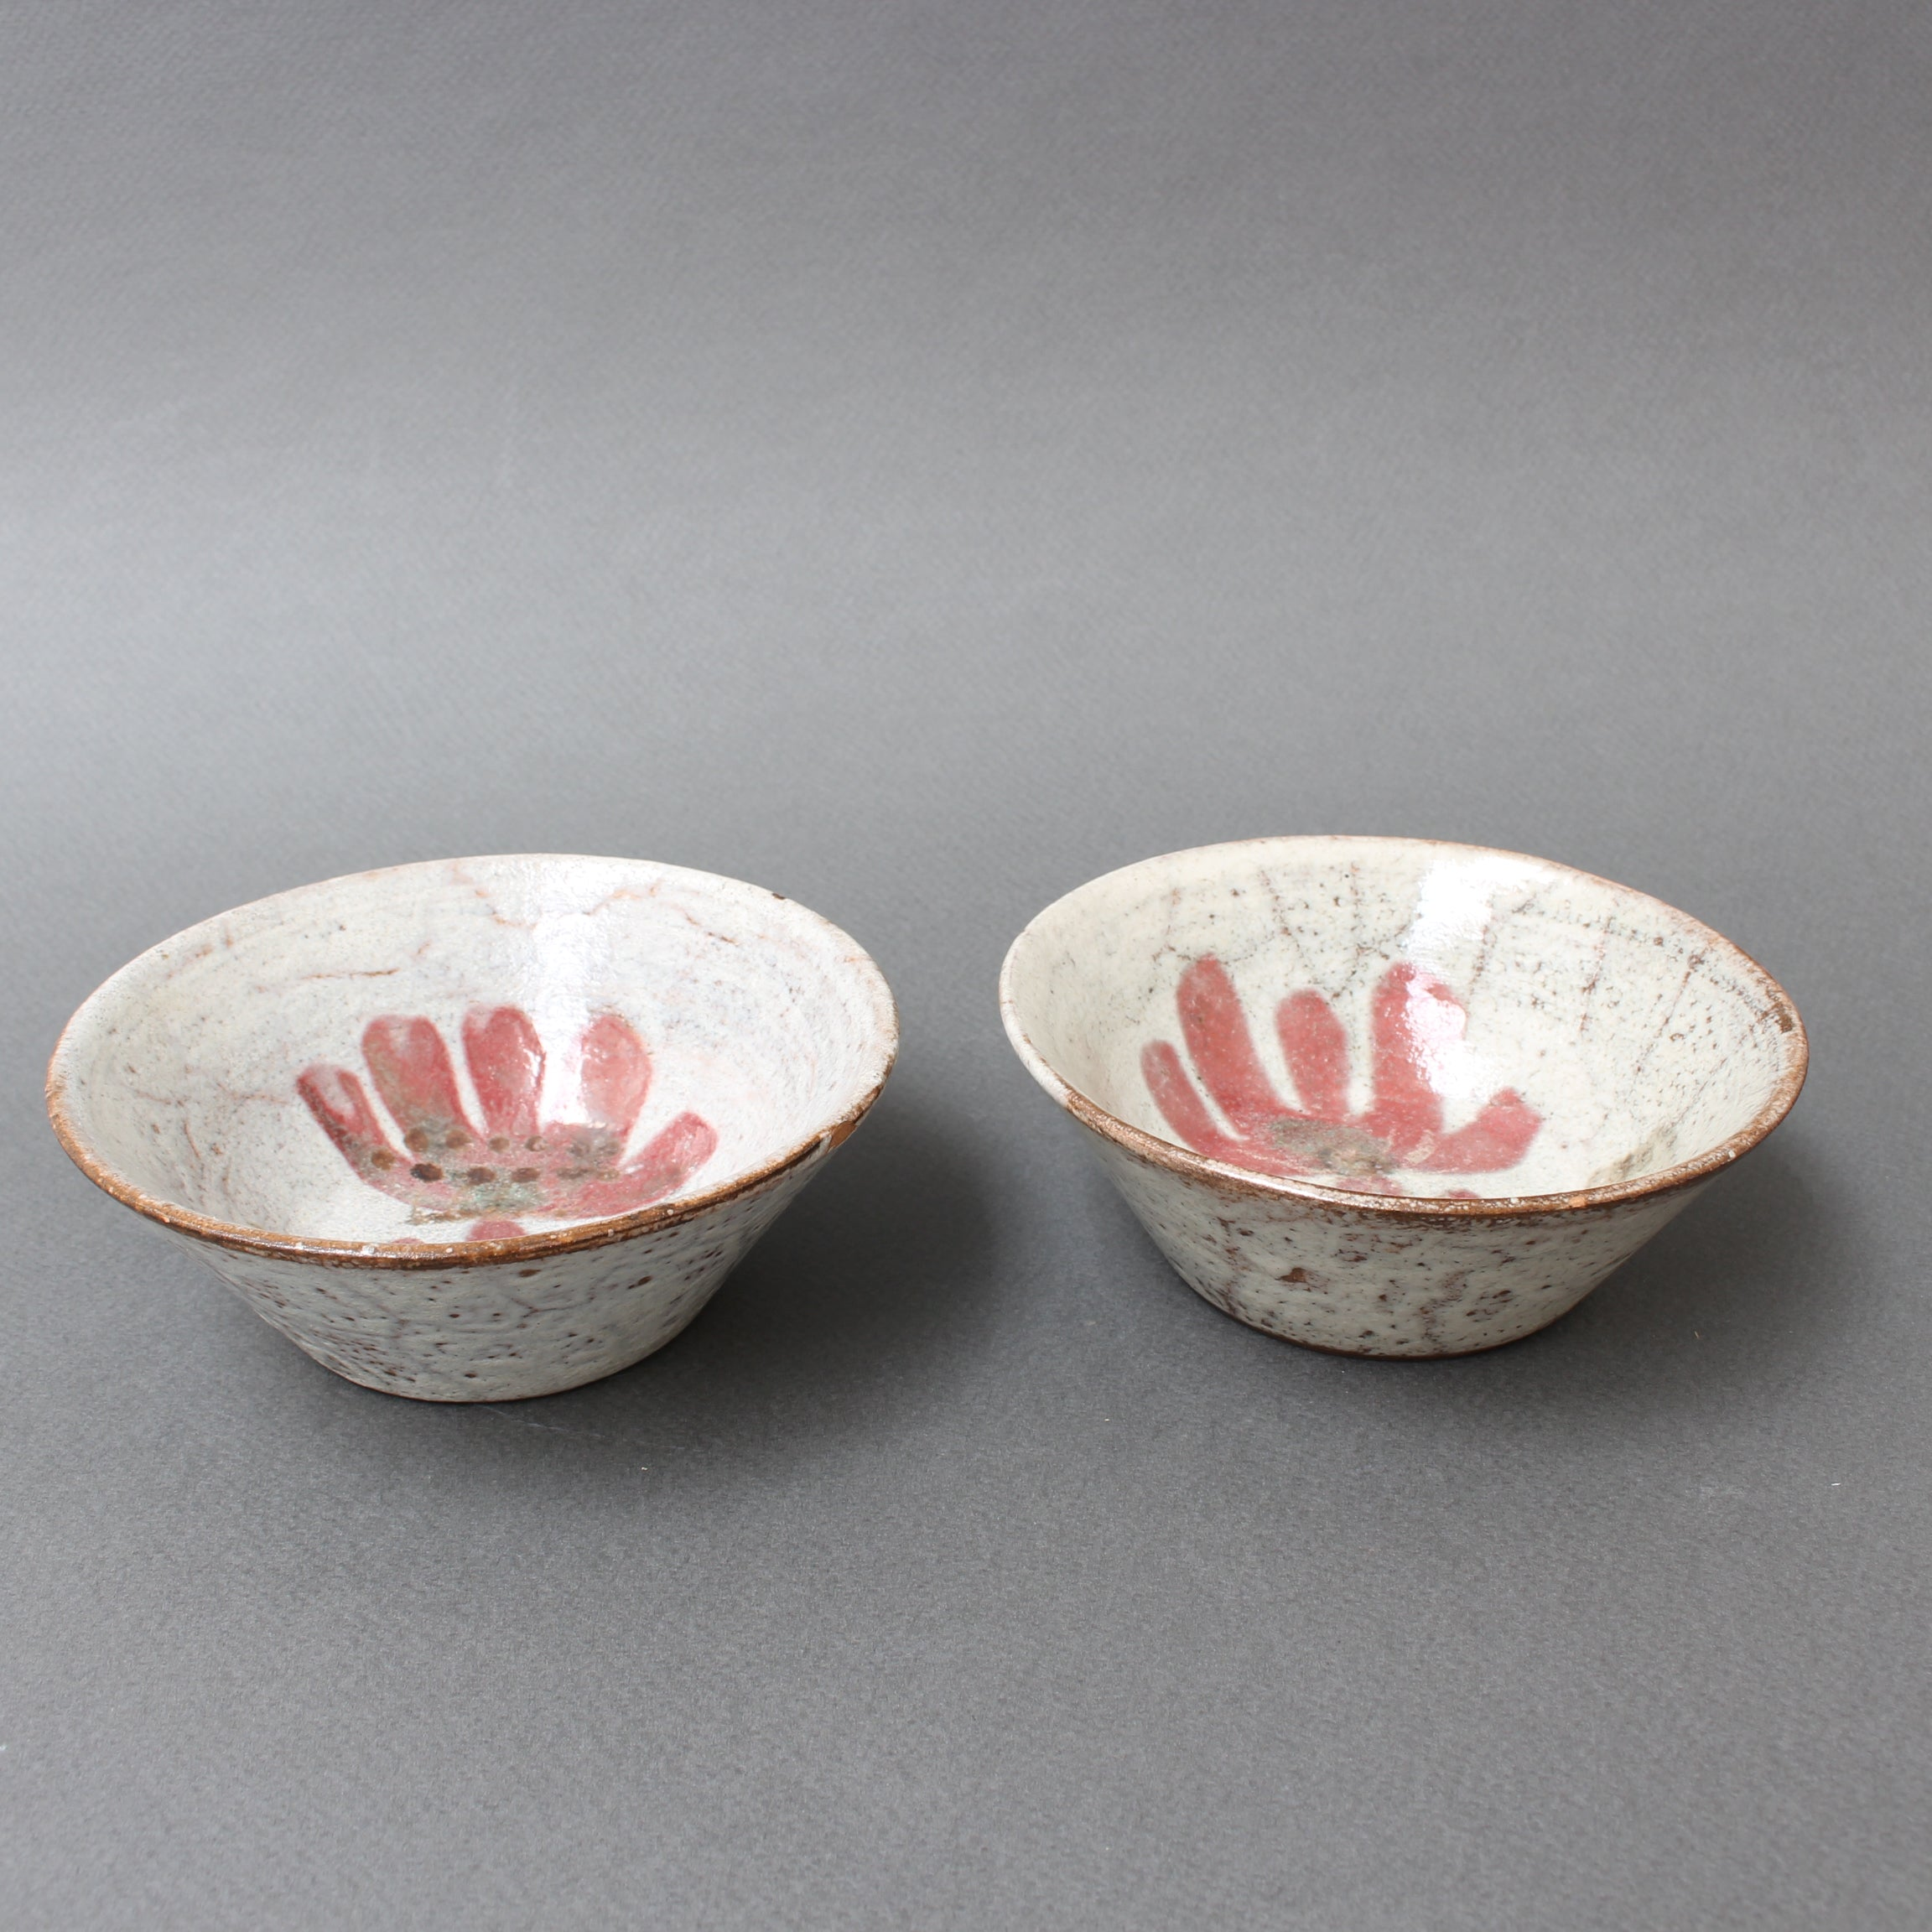 Pair of Small French Ceramic Bowls by Gustave Reynaud for Le Mûrier (circa 1950s)